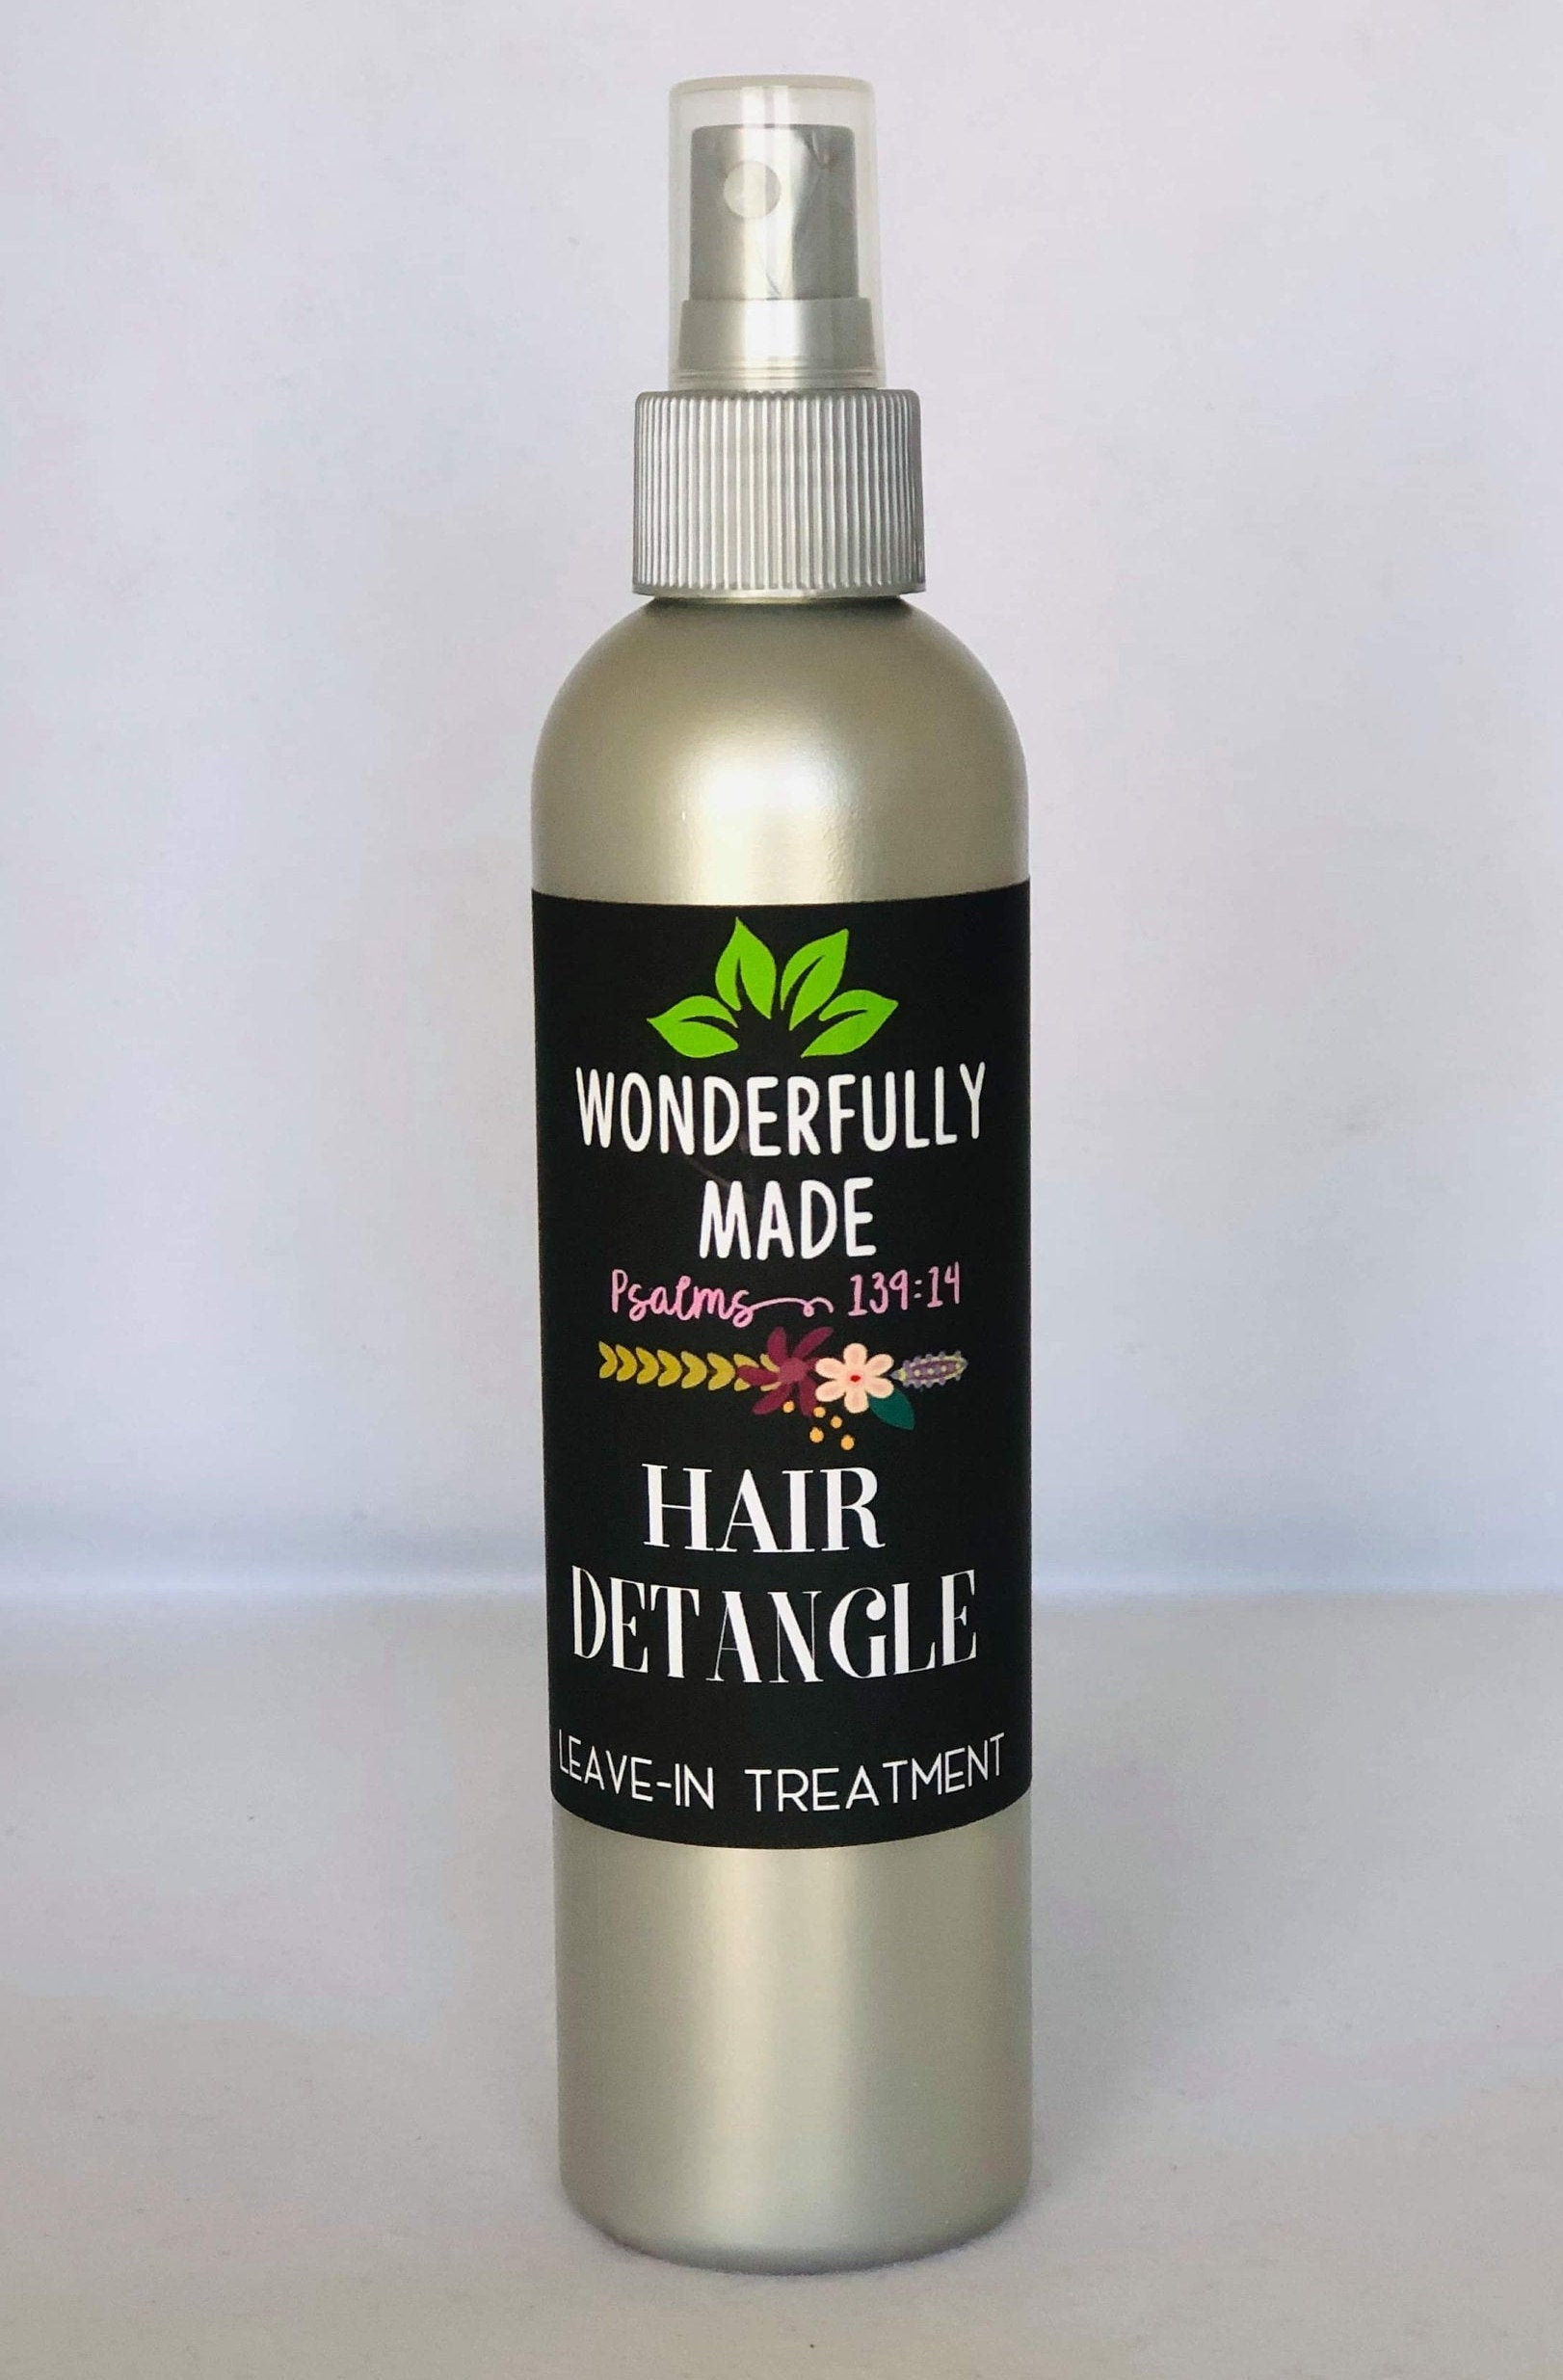 Hair Detangle | Leave-in Conditioner | Controls Frizz | Easy Combing | Styling Heat Protector | Organic Herbal | Natural Hair Products